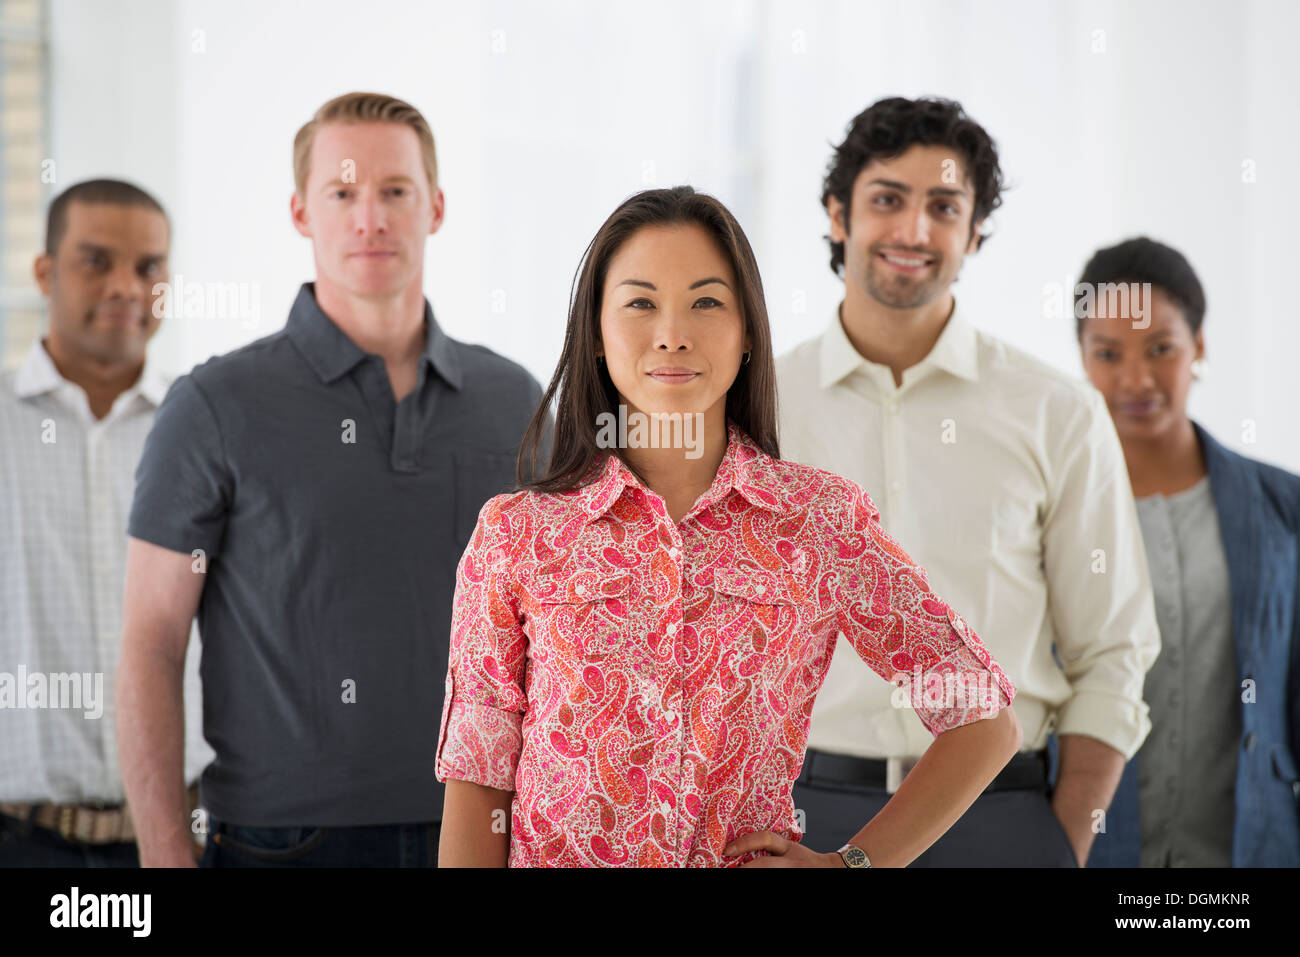 Business. A team of people, a multi ethnic group, men and women in a group. - Stock Image